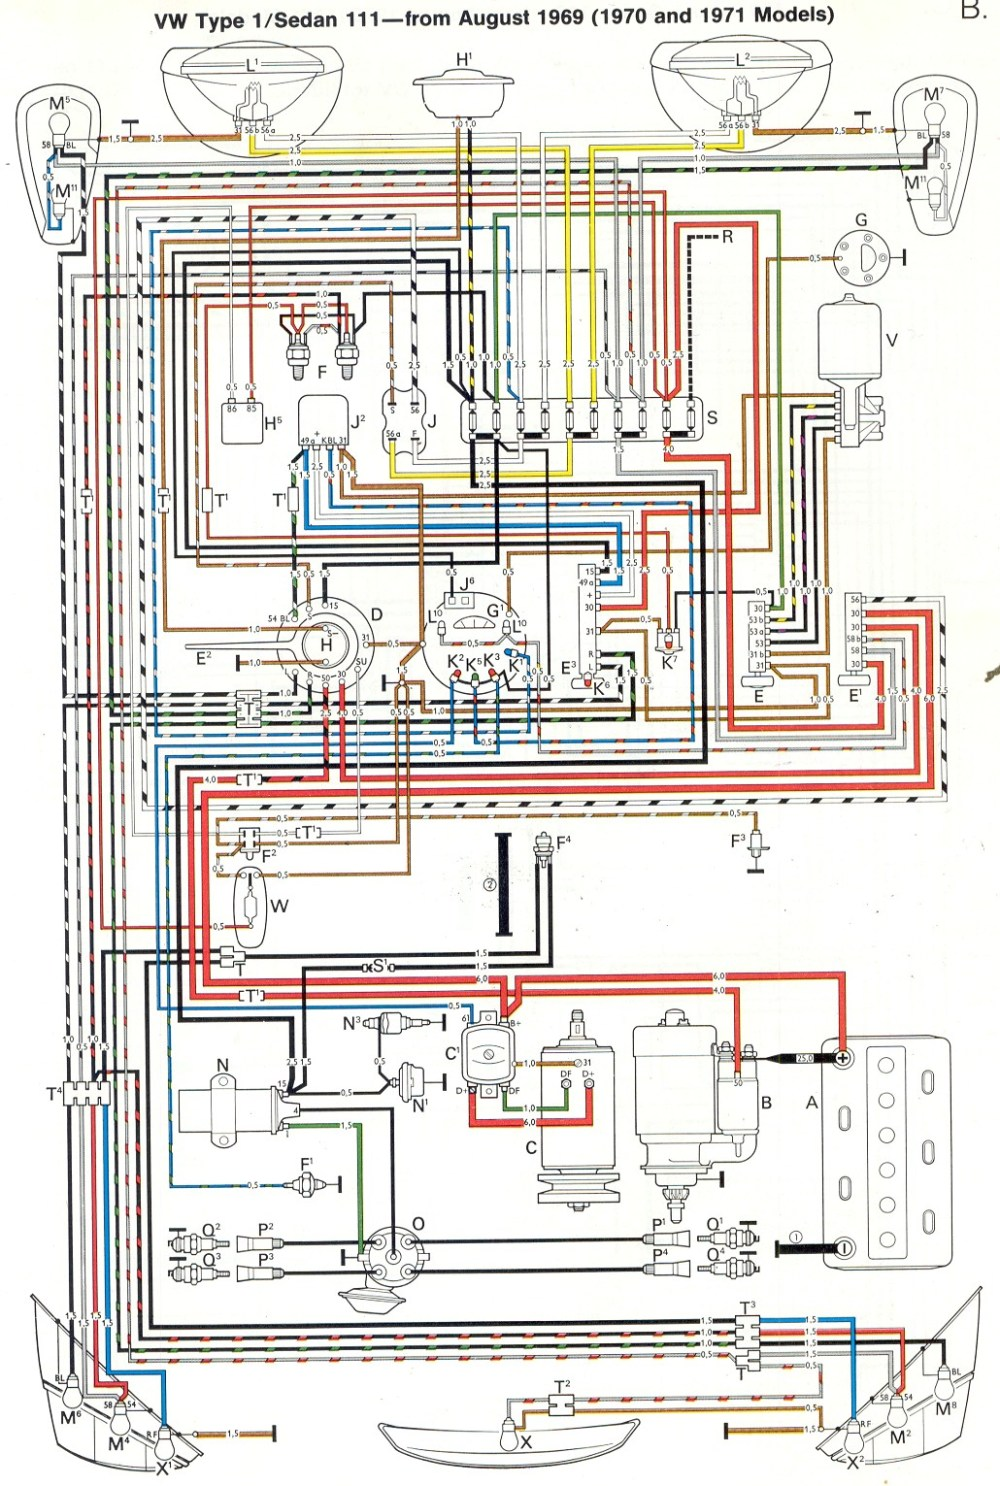 medium resolution of 73 beetle wiring diagram schematic wiring diagrams vw beetle wiring diagram 73 beetle wiring diagram free picture schematic